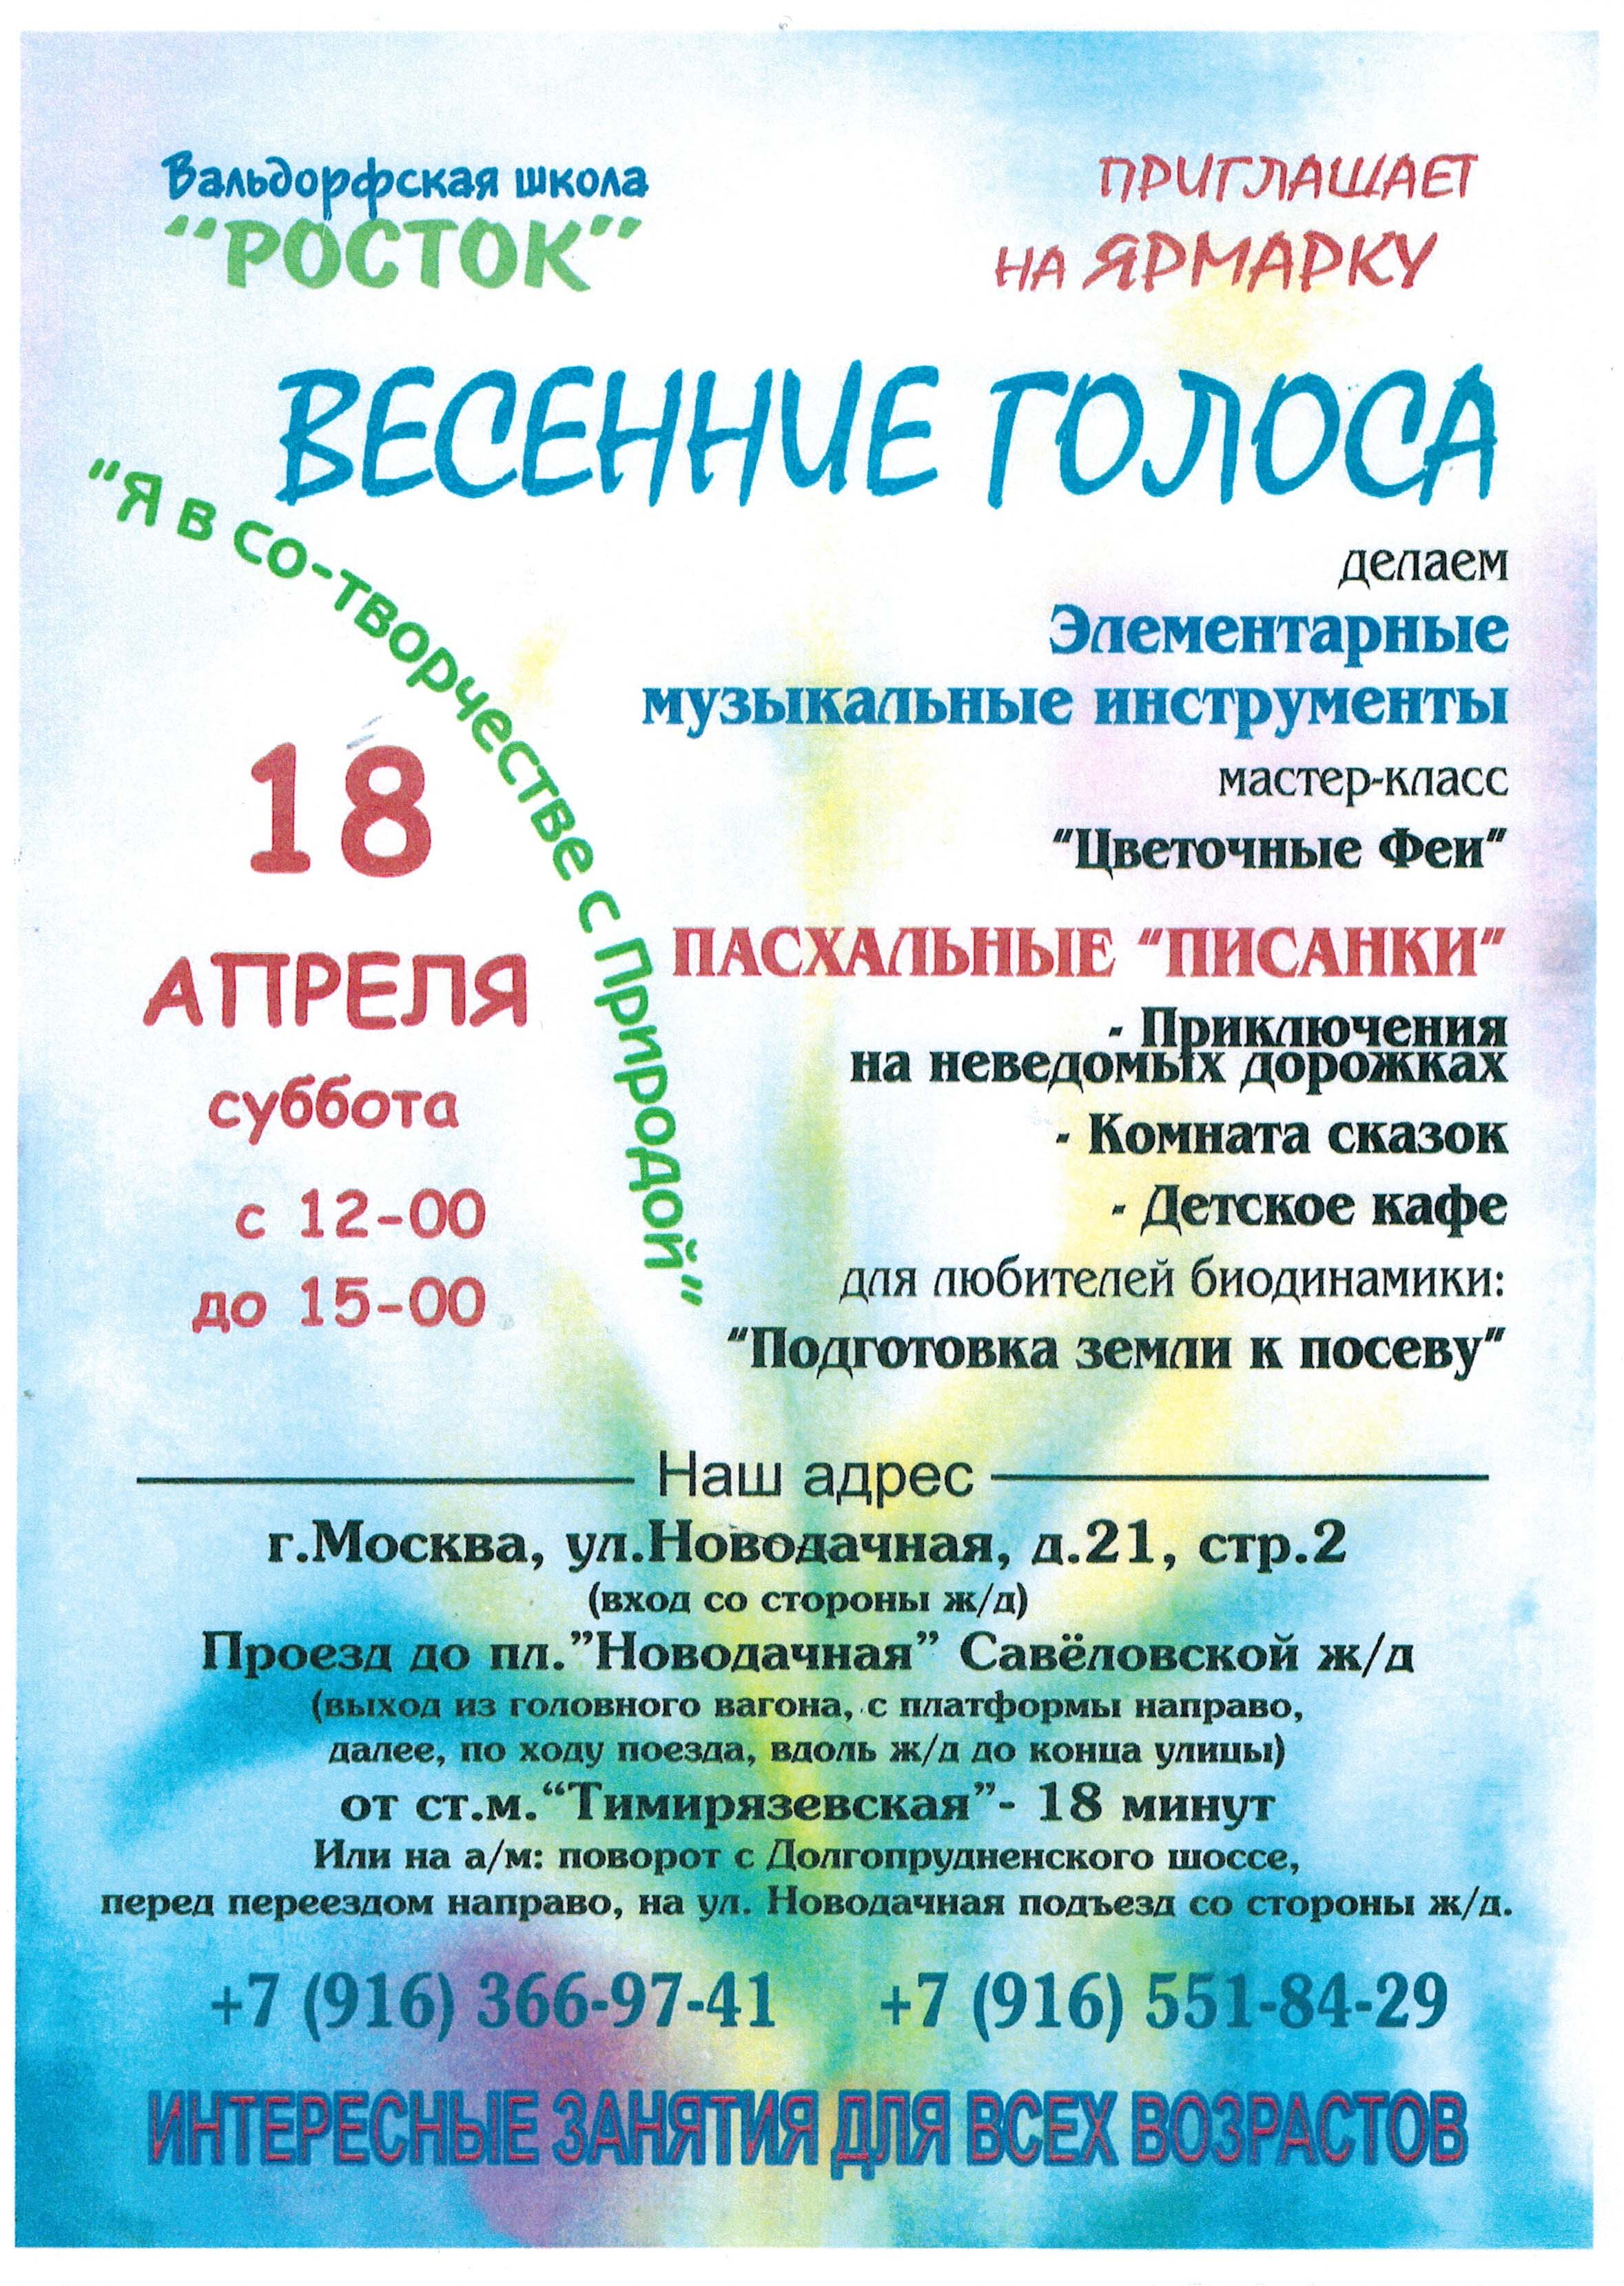 school rostok 14apr